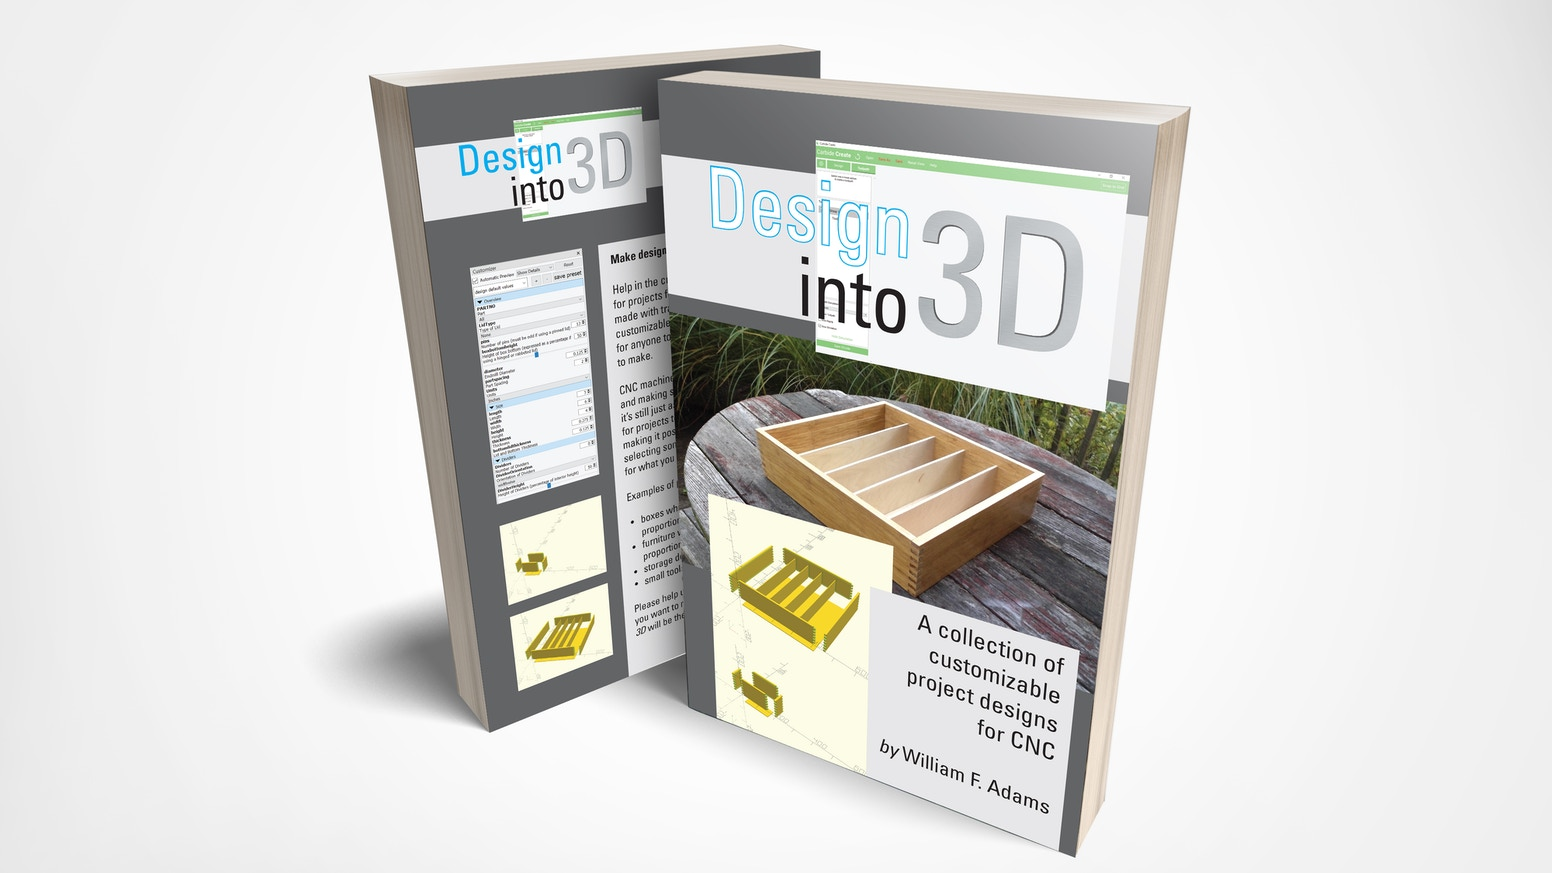 Design into 3D: a book of customizable project designs by William